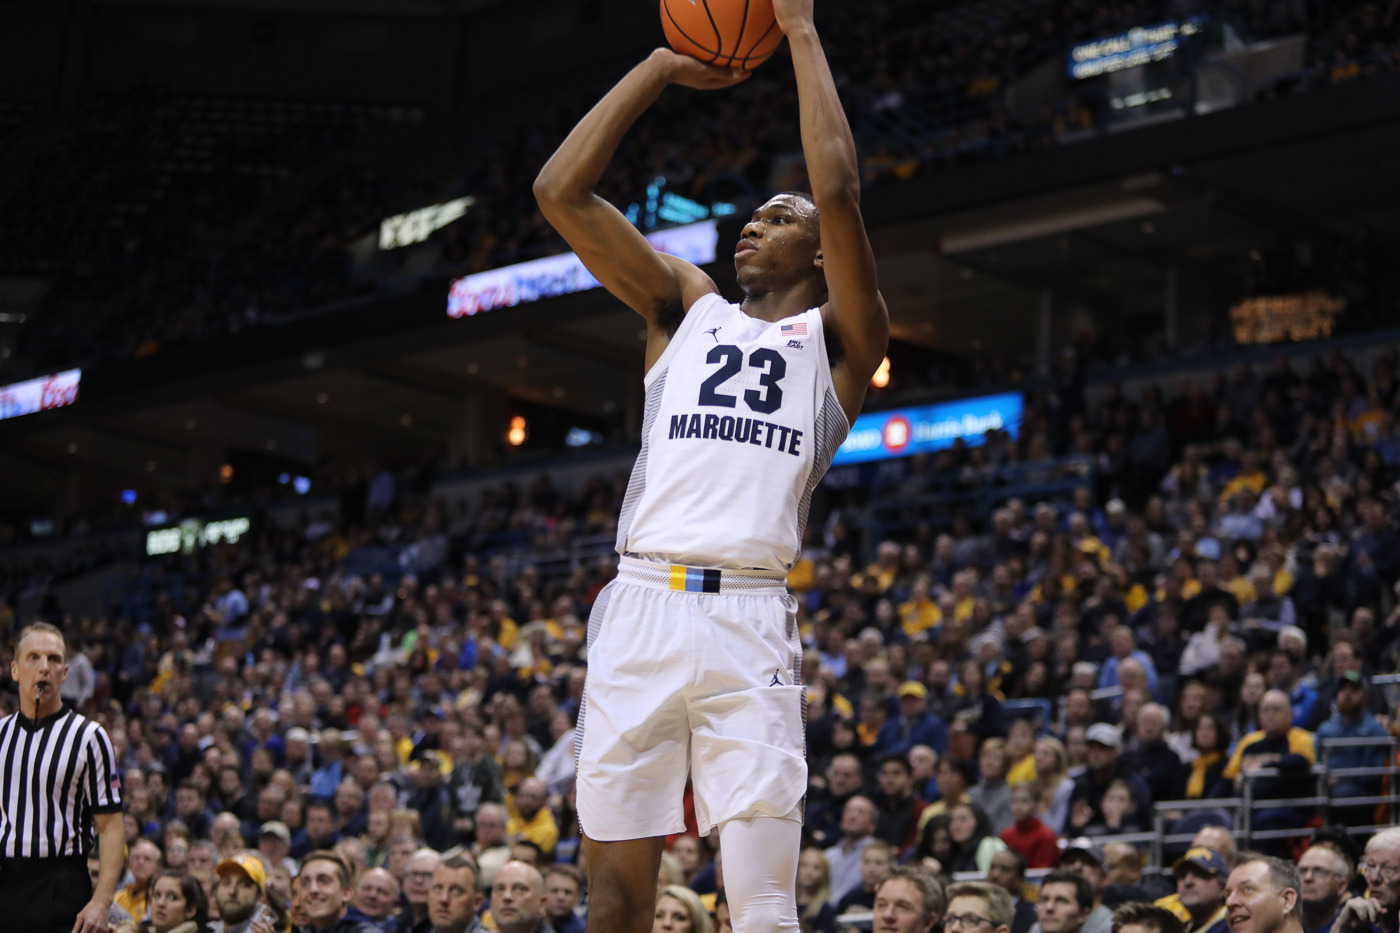 Freshman Jamal Cain poured in a career-best 16 points with four 3-pointers.